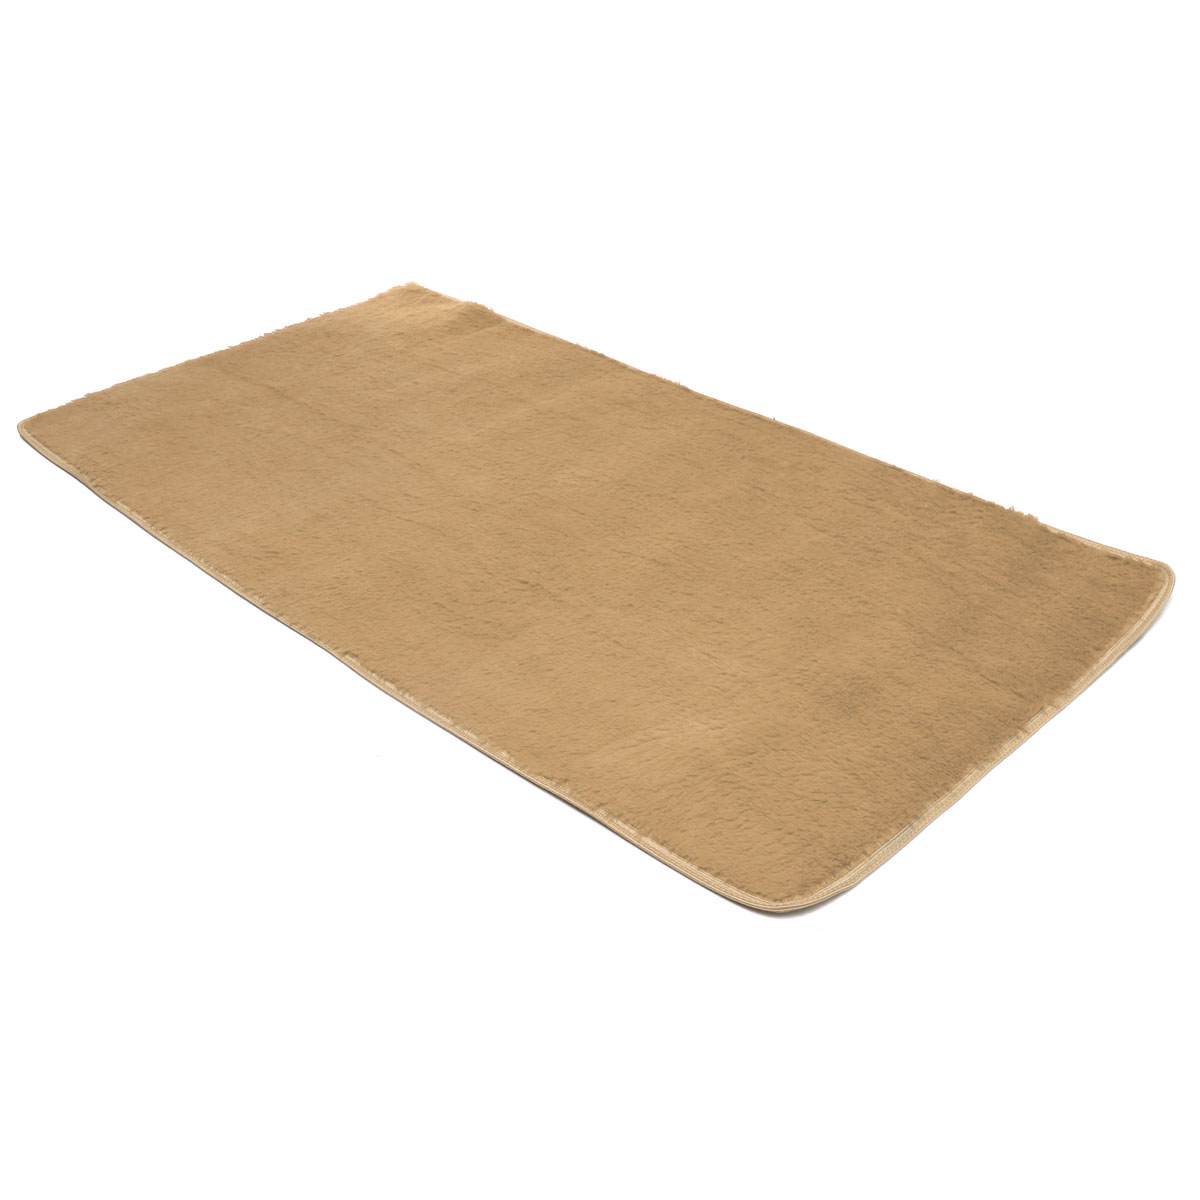 90x160cm Bedroom Fluffy Floor Mat Soft Shaggy Blanket Non Slip Living Room Rug